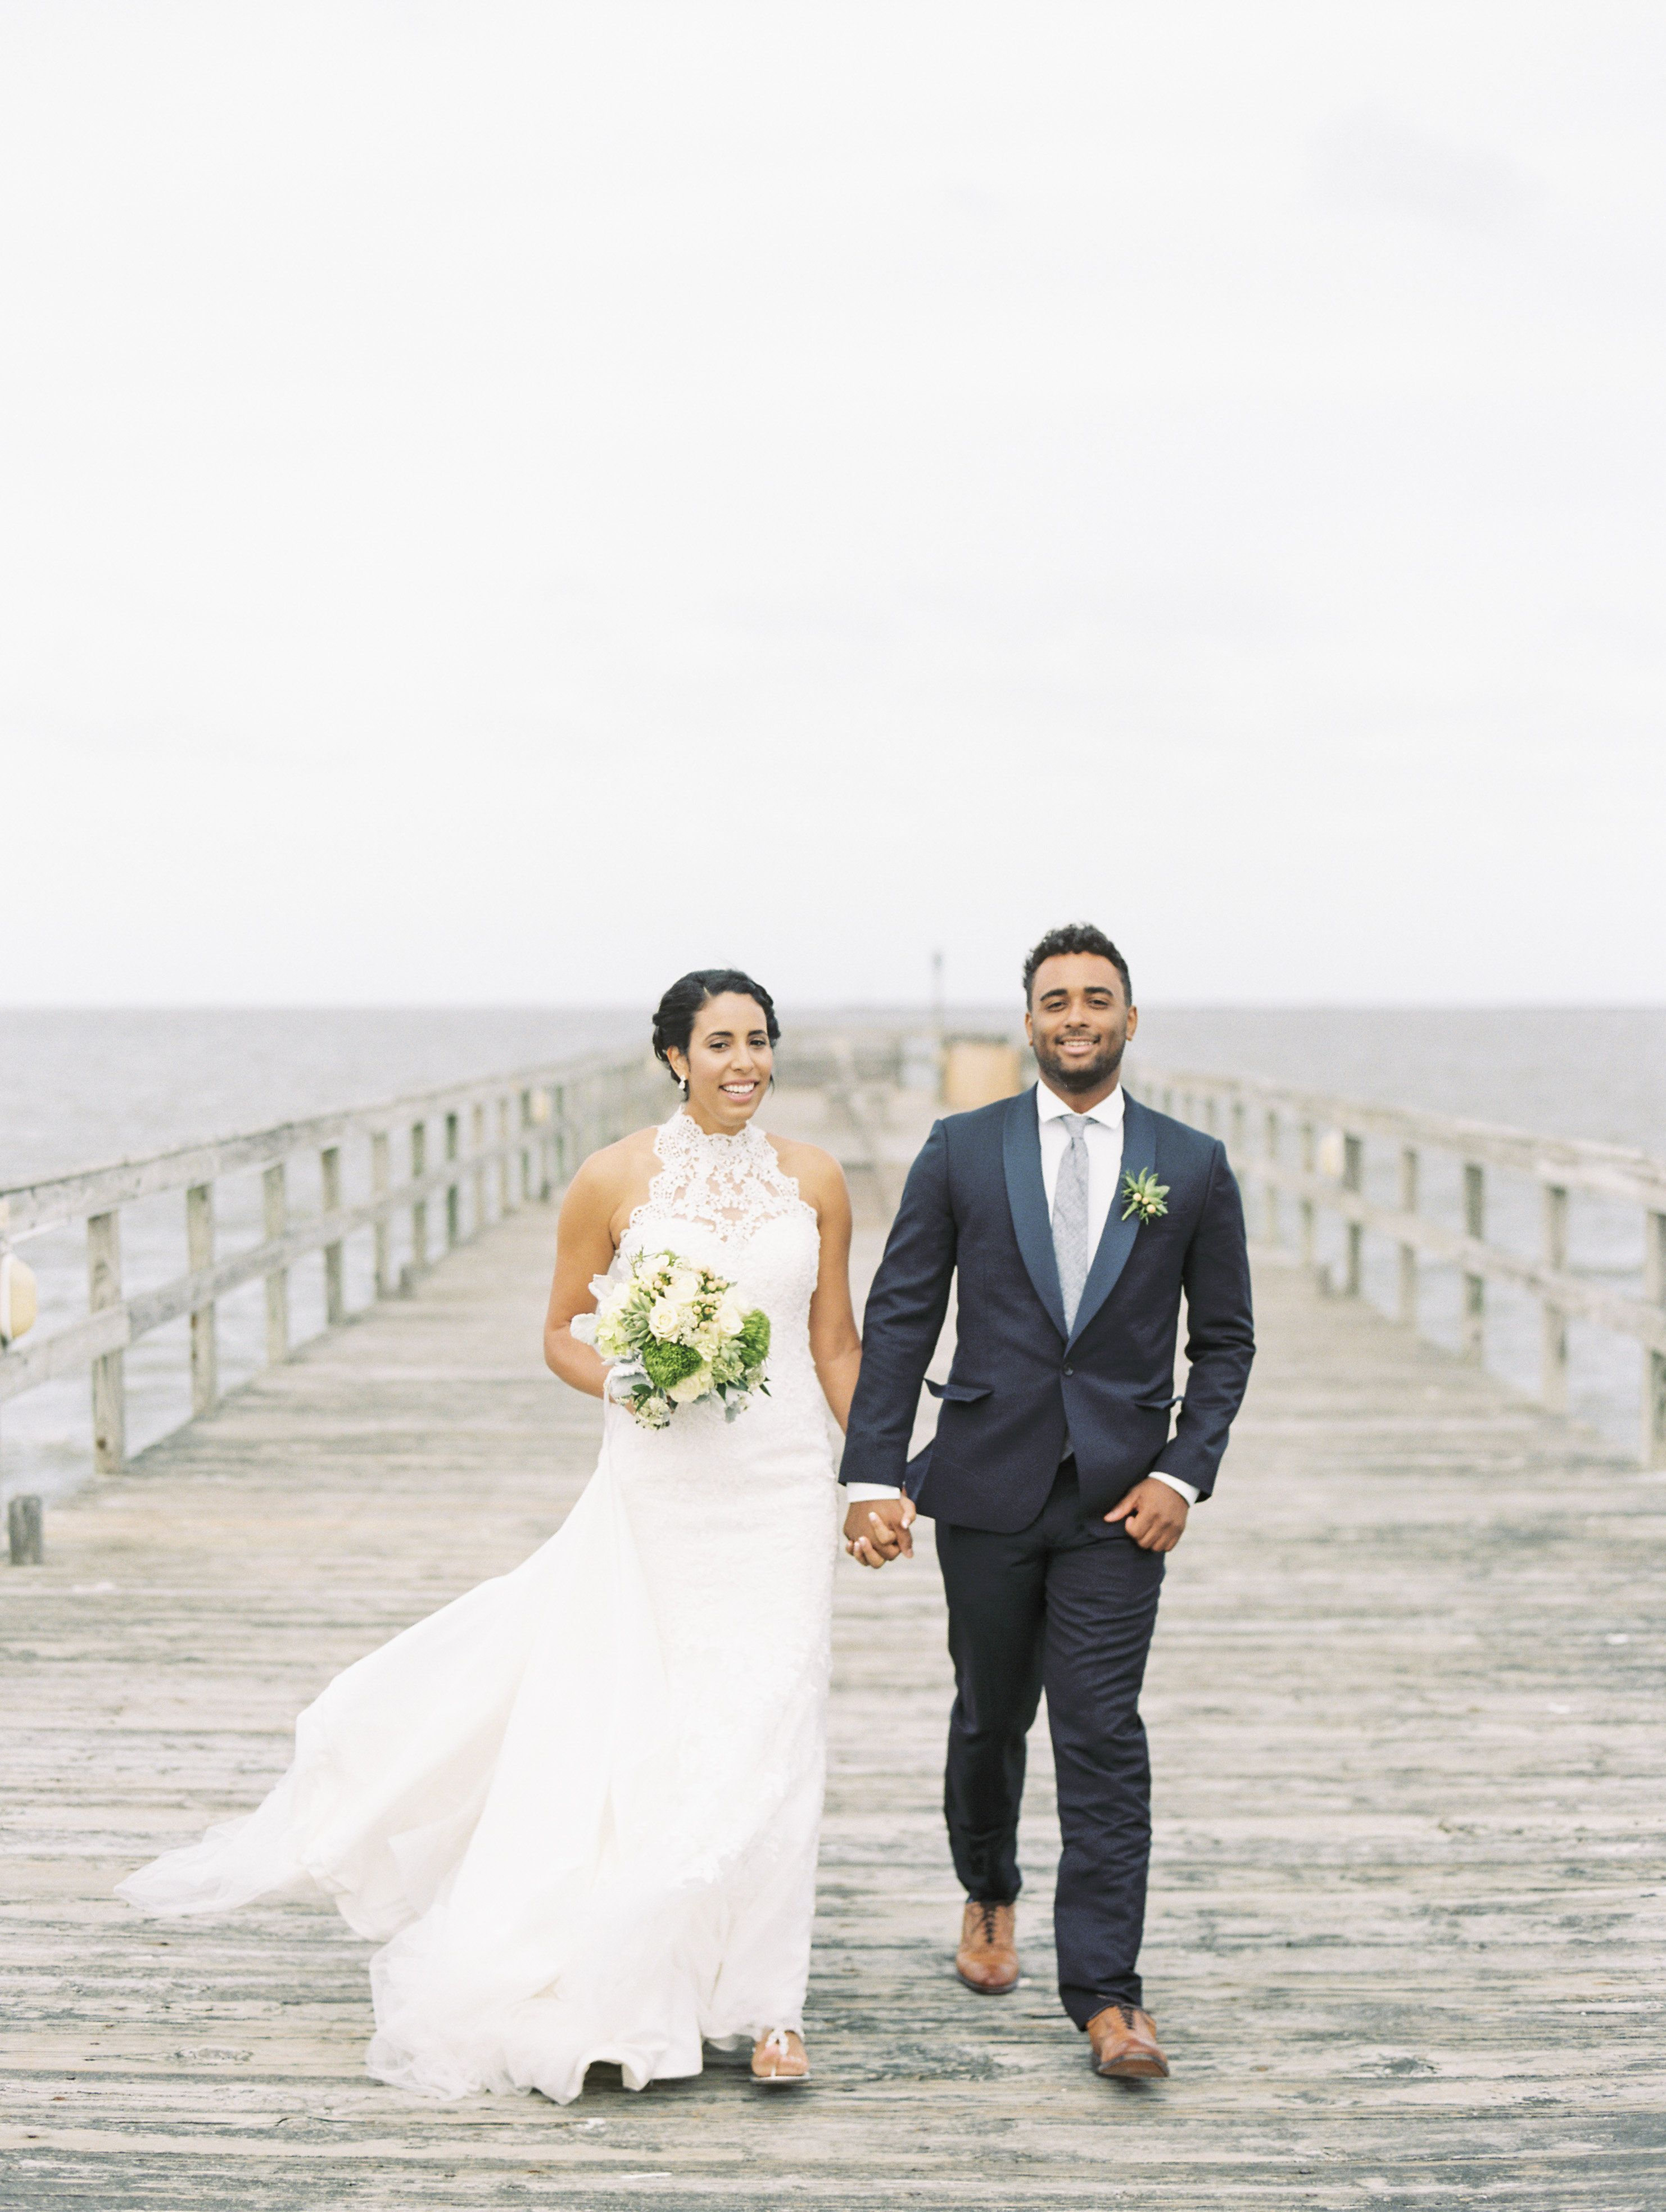 A Rustic Beach Wedding At Lewes Canalfront In Lewes Delaware